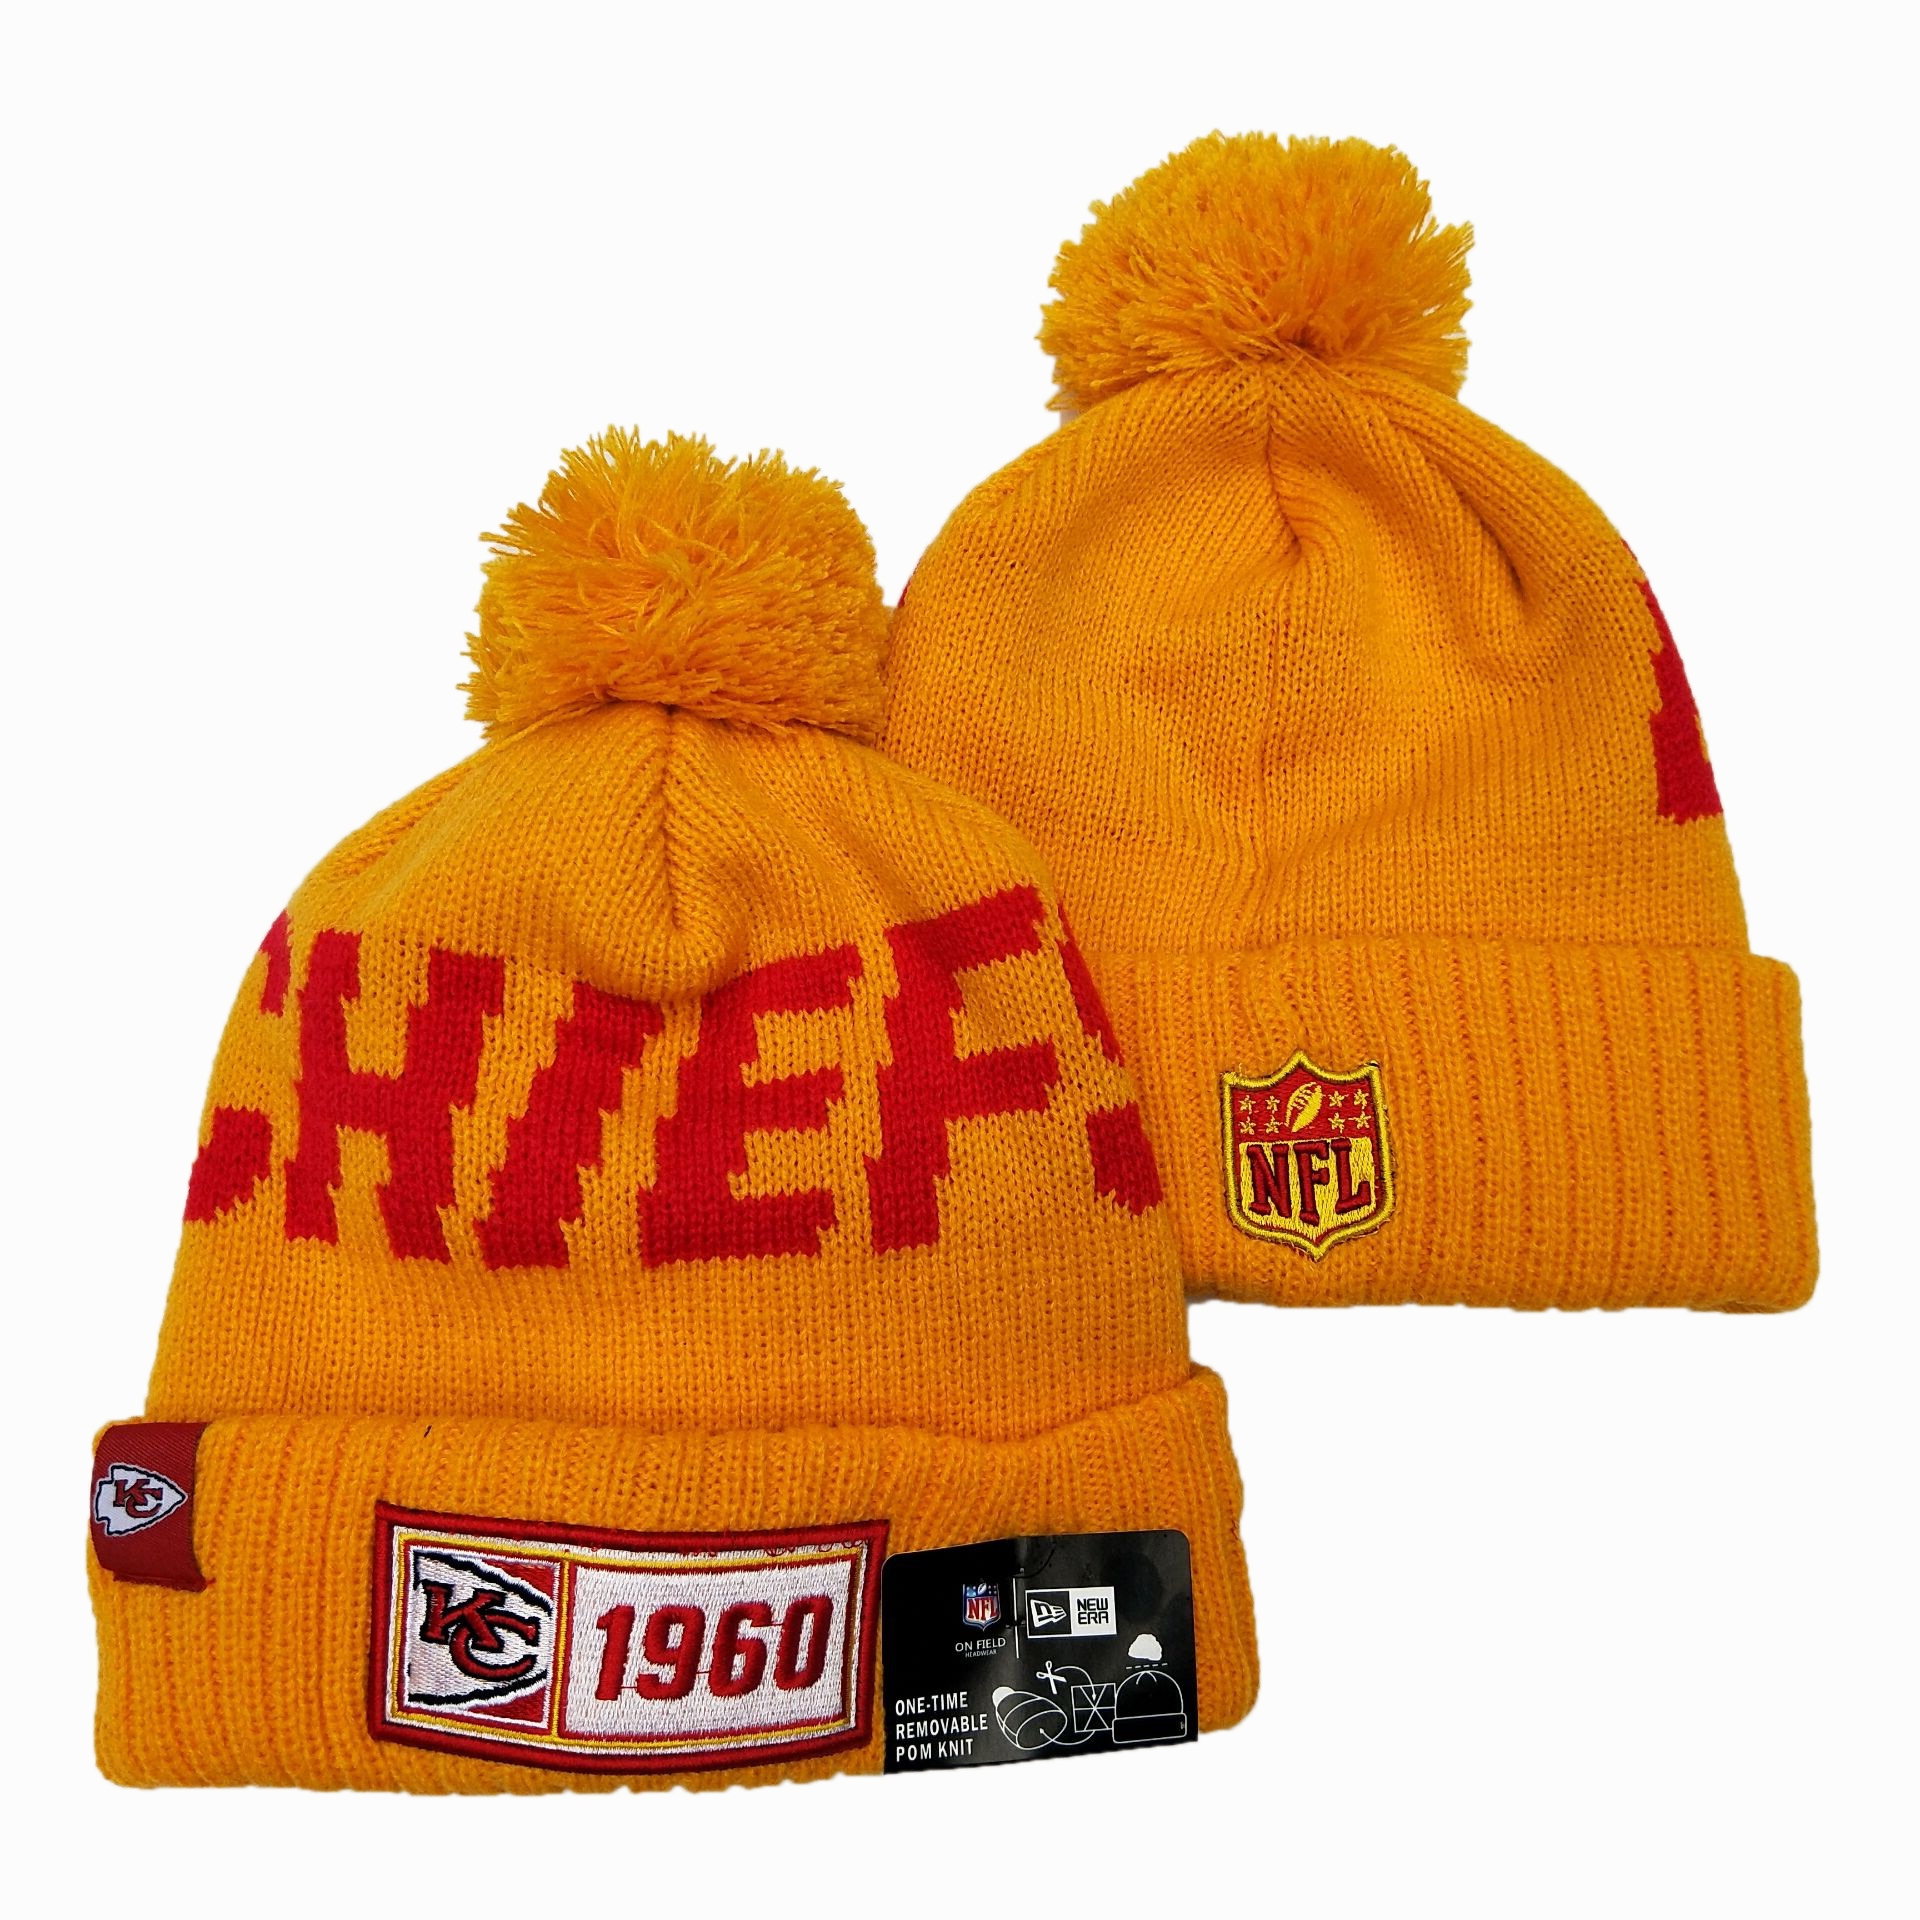 NFL Kansas City Chiefs New Era 2019 Sideline Road Reverse Sport Knit Hats 016